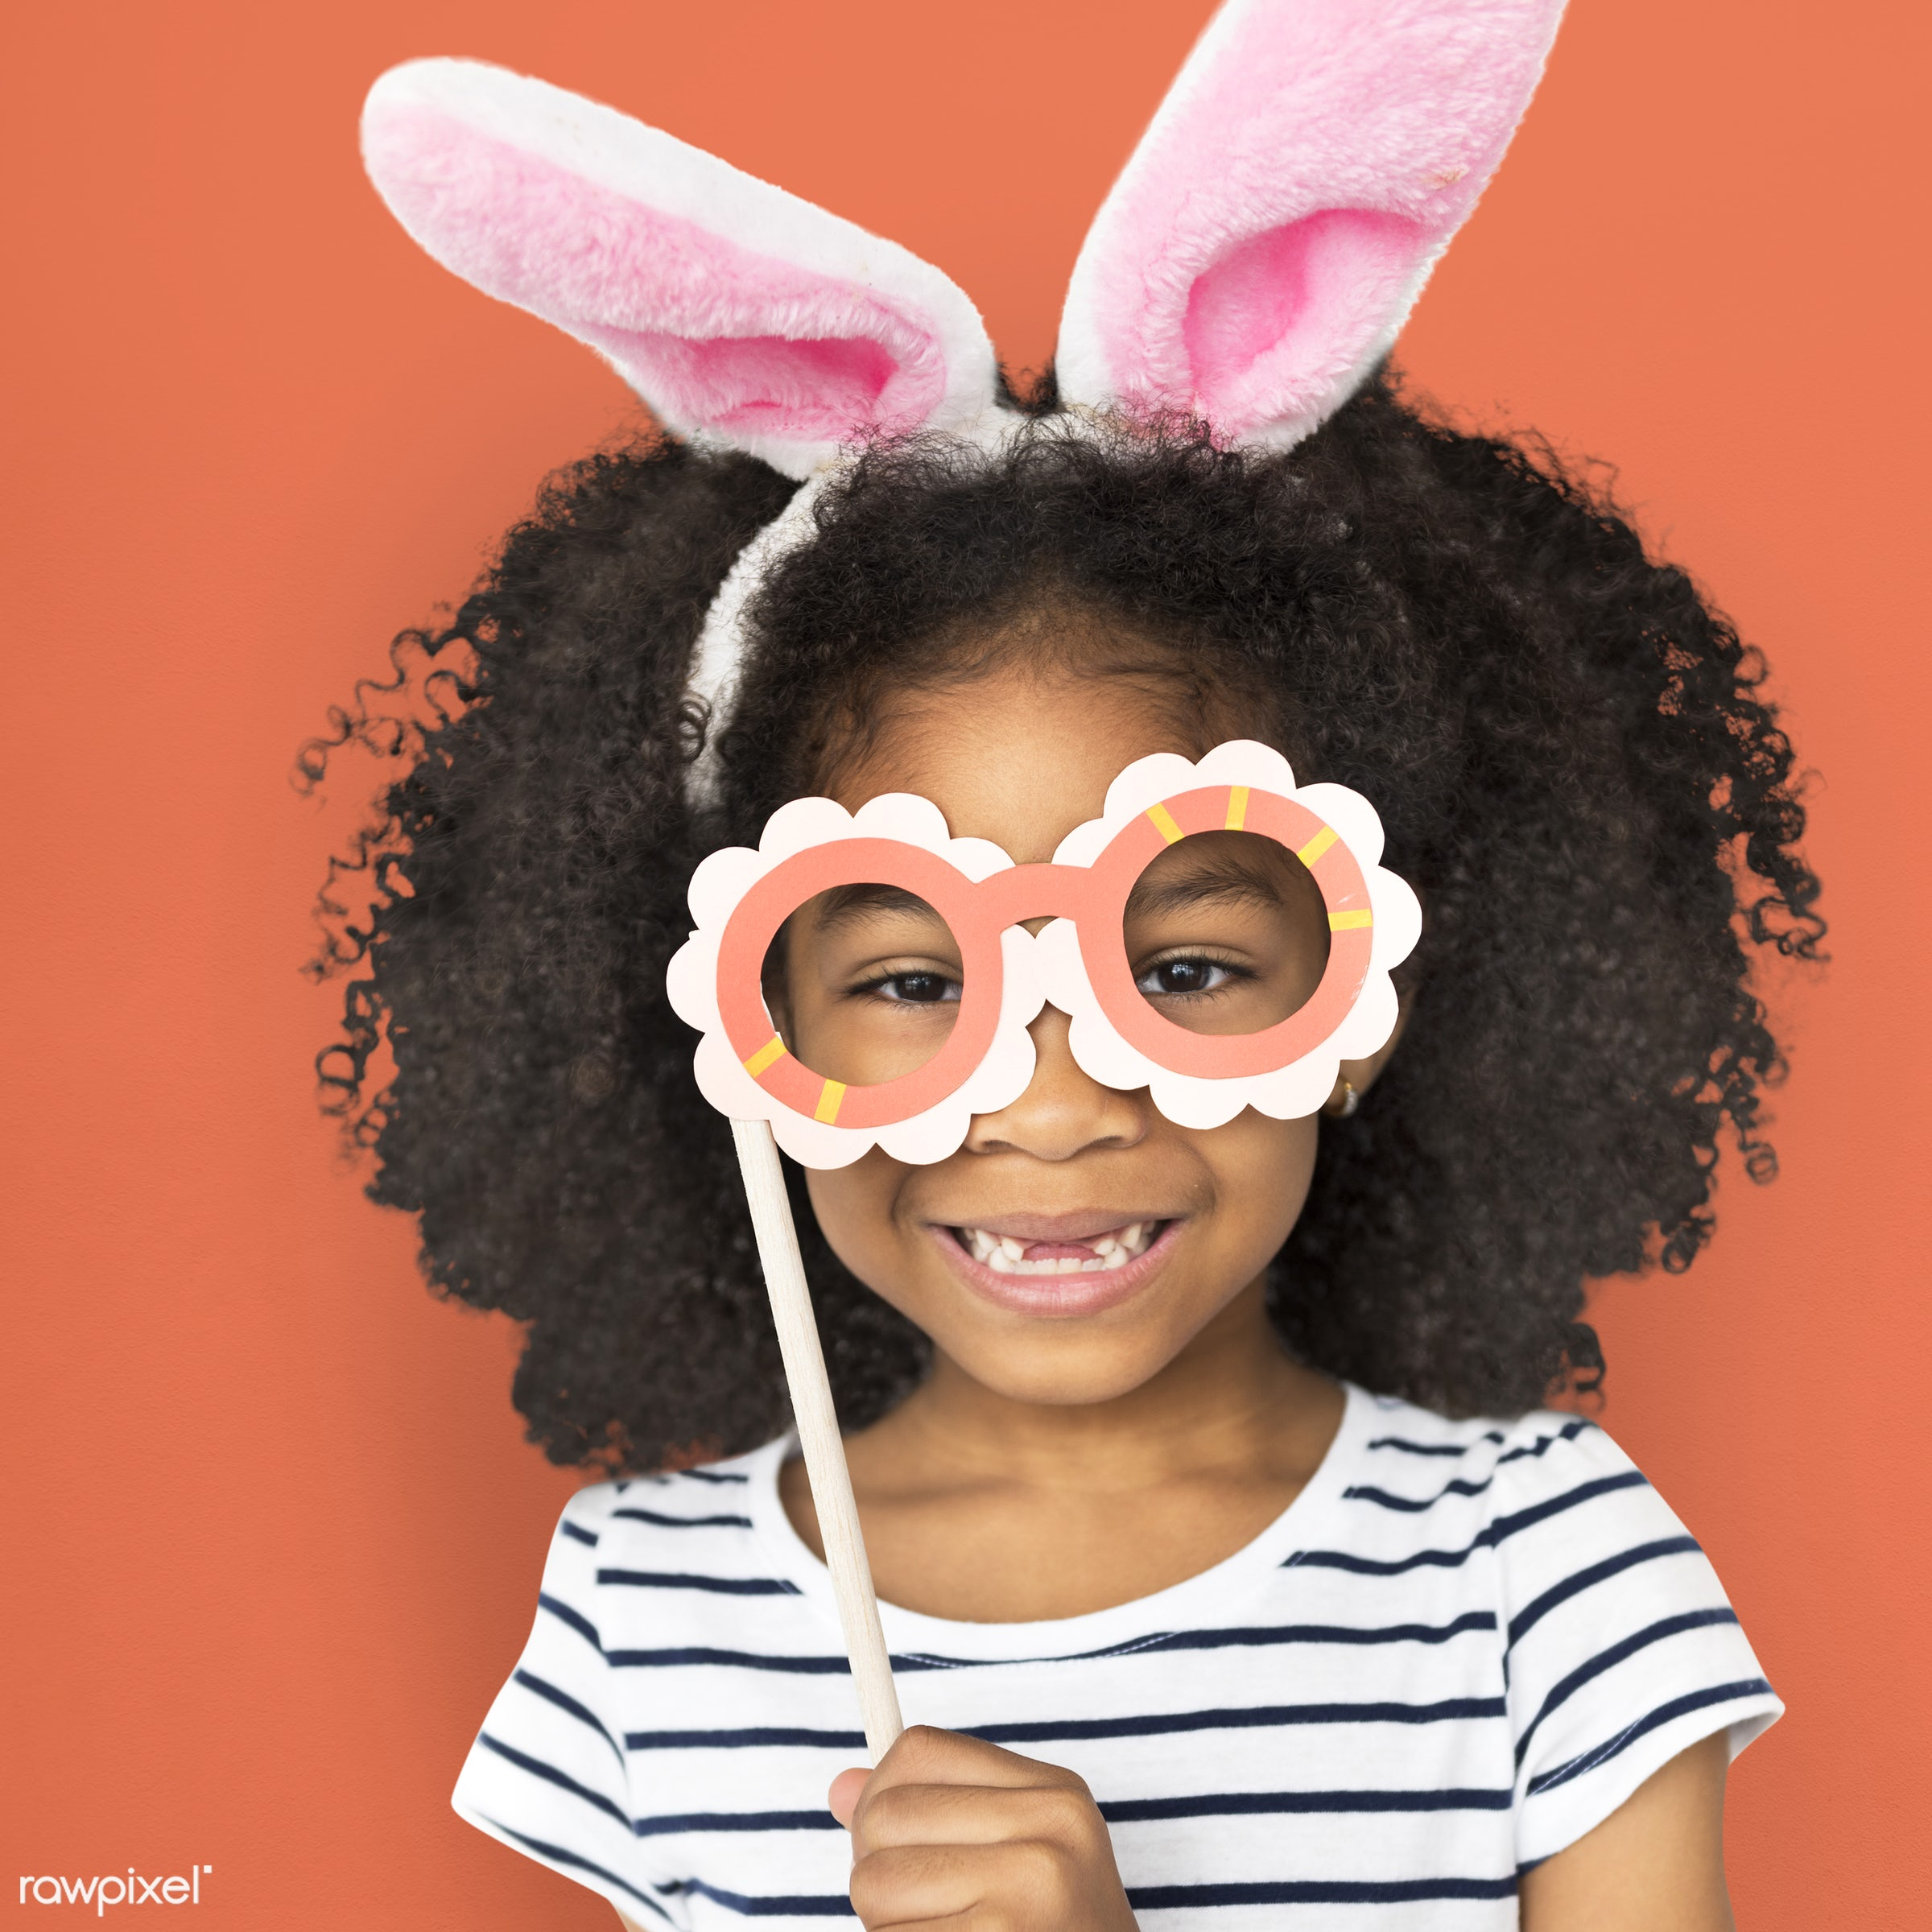 expression, studio, person, little, cute, people, child, girl, headband, happy, casual, smile, cheerful, smiling, isolated,...